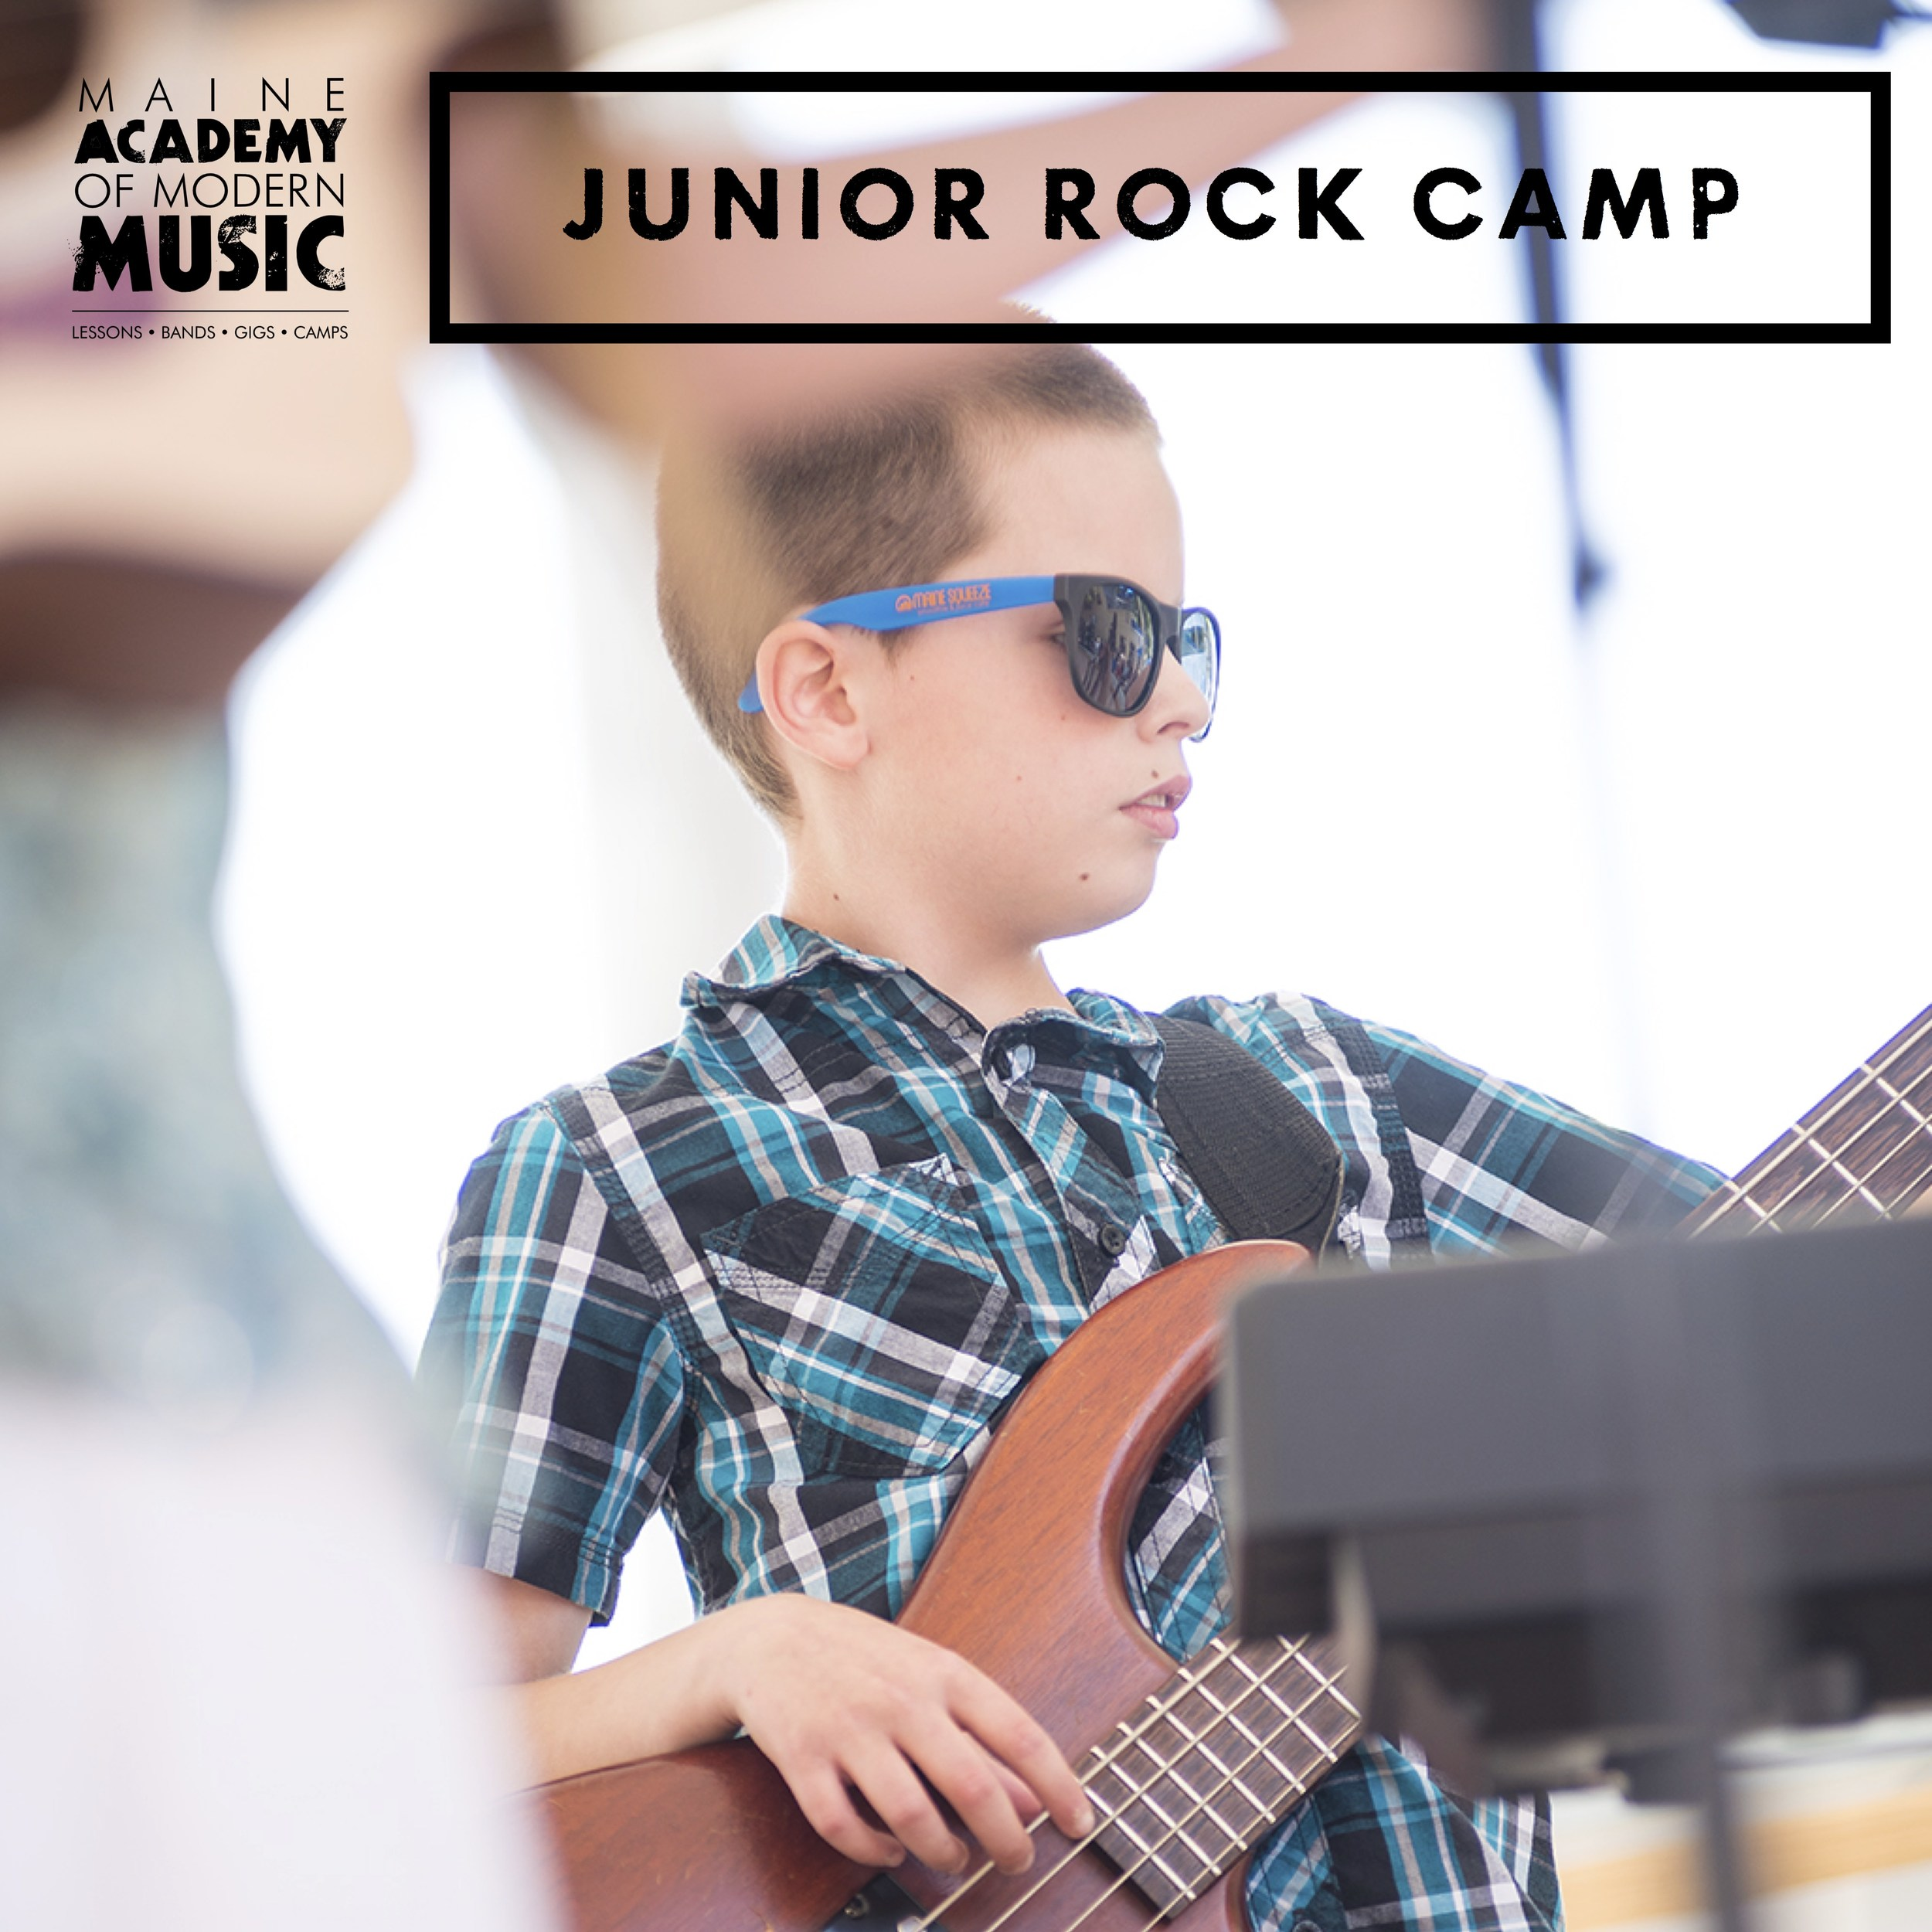 MAMM's Junior Rock Camp provides the youngest rock stars (8-11) with a basic introduction to the genre. At this   TWO WEEK CAMP   students are introduced to the instruments used in rock n roll and will learn how work together to play in a band.   PORTLAND:    Session 1 - June 24-July 5    Session 2 - August 12 - 23    TUITION:    Session I - $550    Session II - $600    HOURS: 9am-3:30pm    *Session I will NOT meet on the 4th of July and our costs are adjusted accordingly.